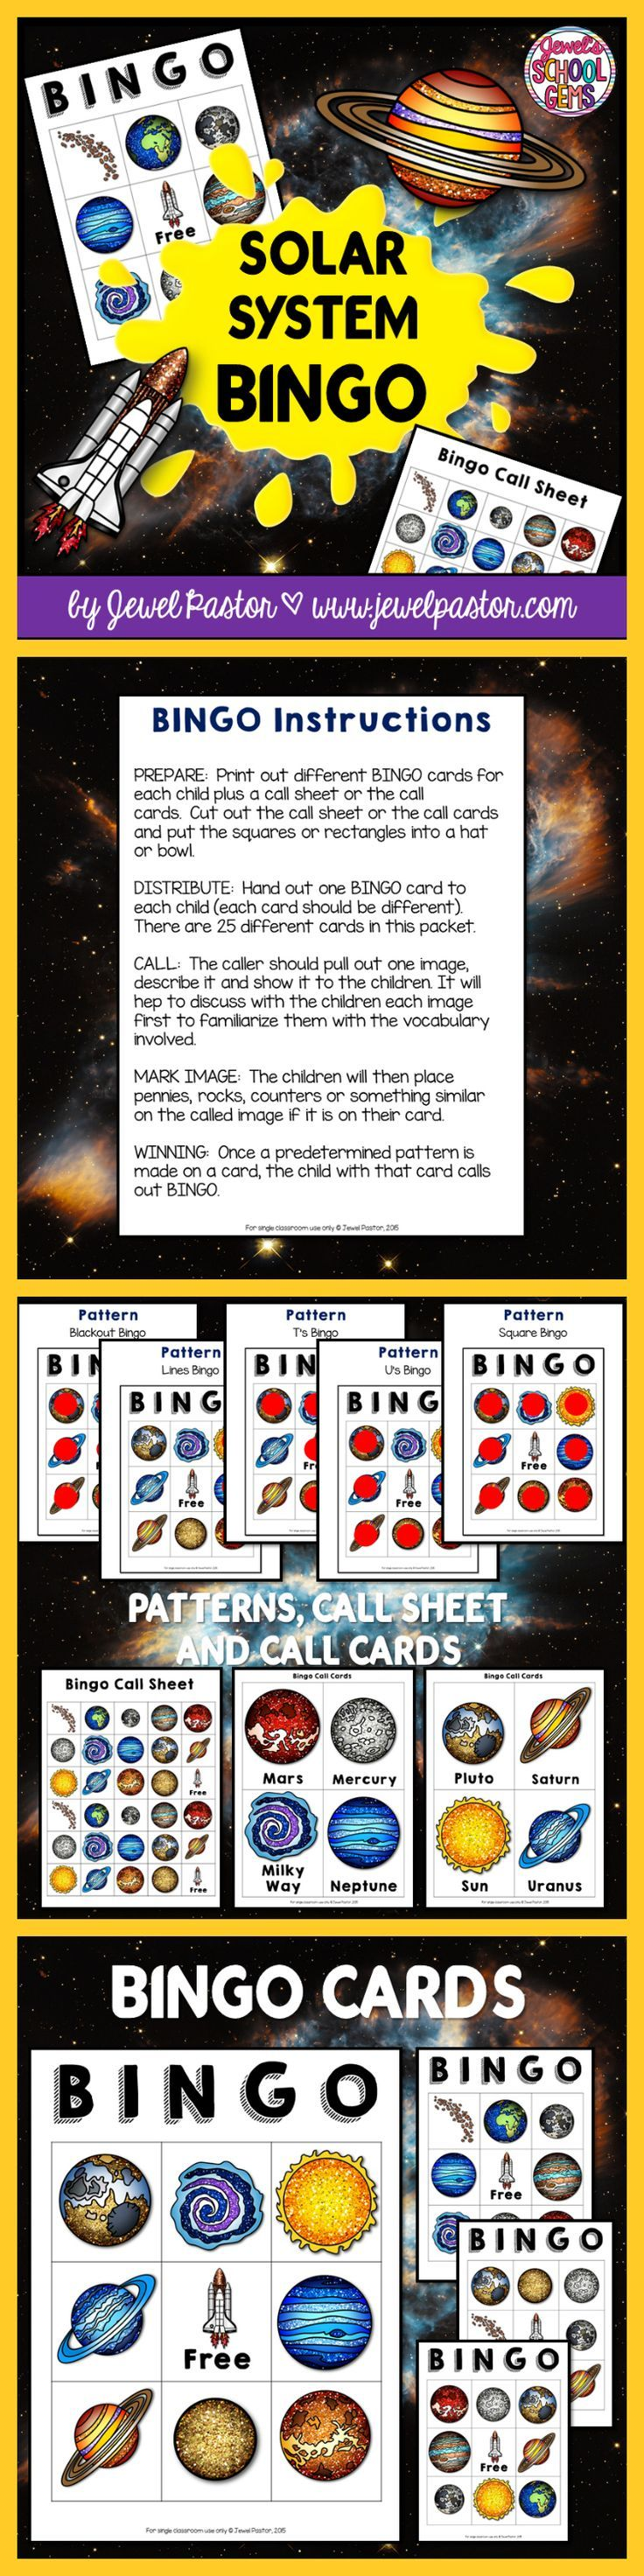 Great game for students to test their knowledge about the solar system. Students love games and this would also make learning fun for them.